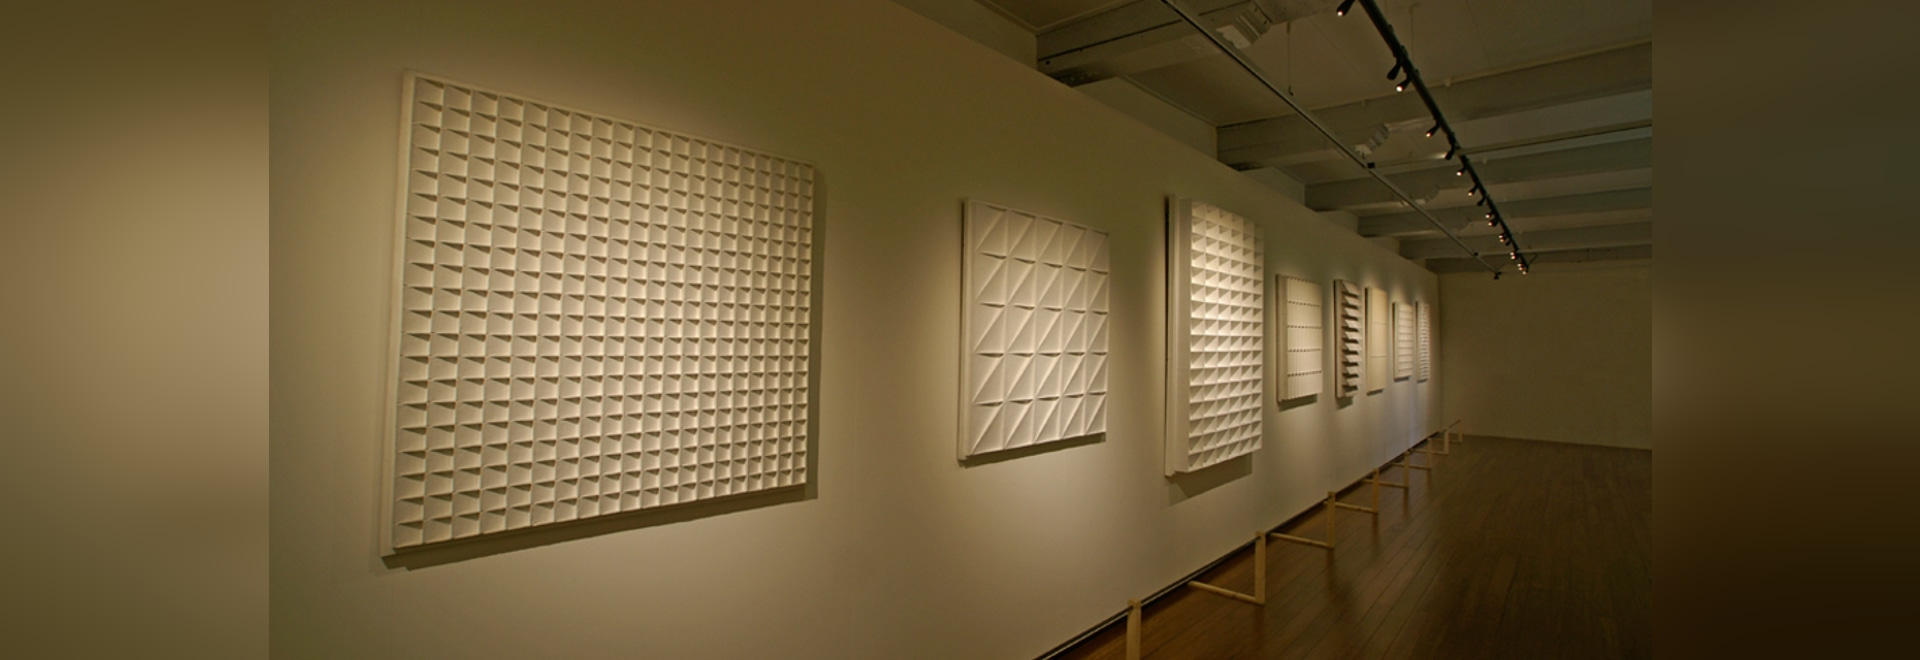 Jan Schoonhoven Exhibition, The Netherlands